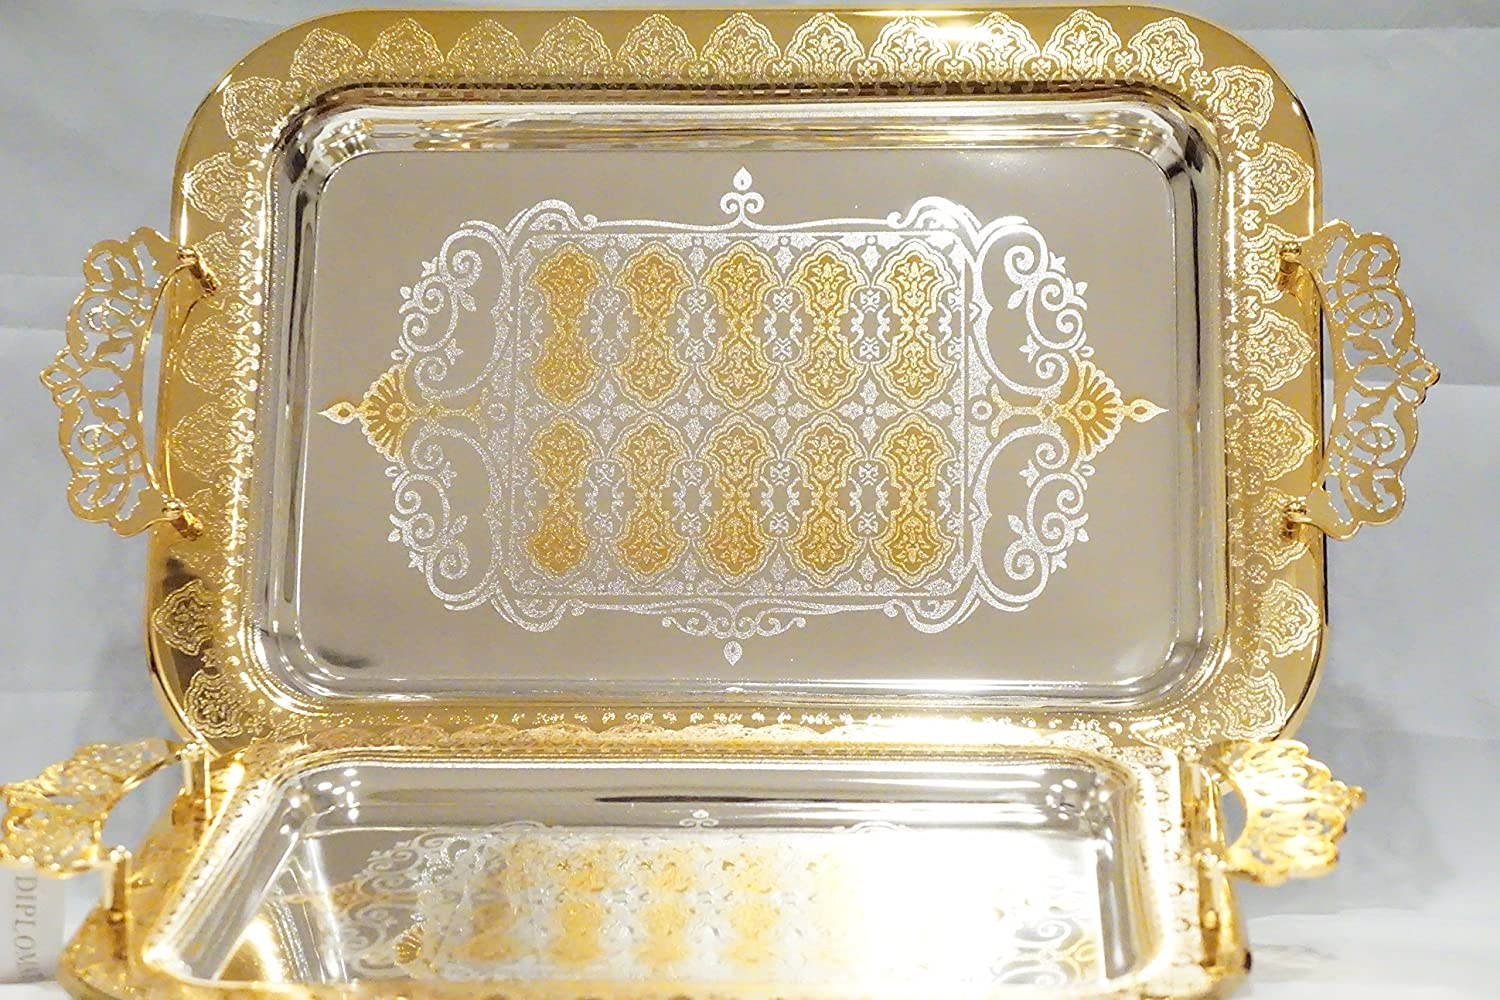 Home N Kitchenware Collection (2 Piece Set) Decorative Food/Coffee Serving Tray, Charger Plate, Mediterranean Design, Centerpieces/Home Décor Accents, Many Designs available